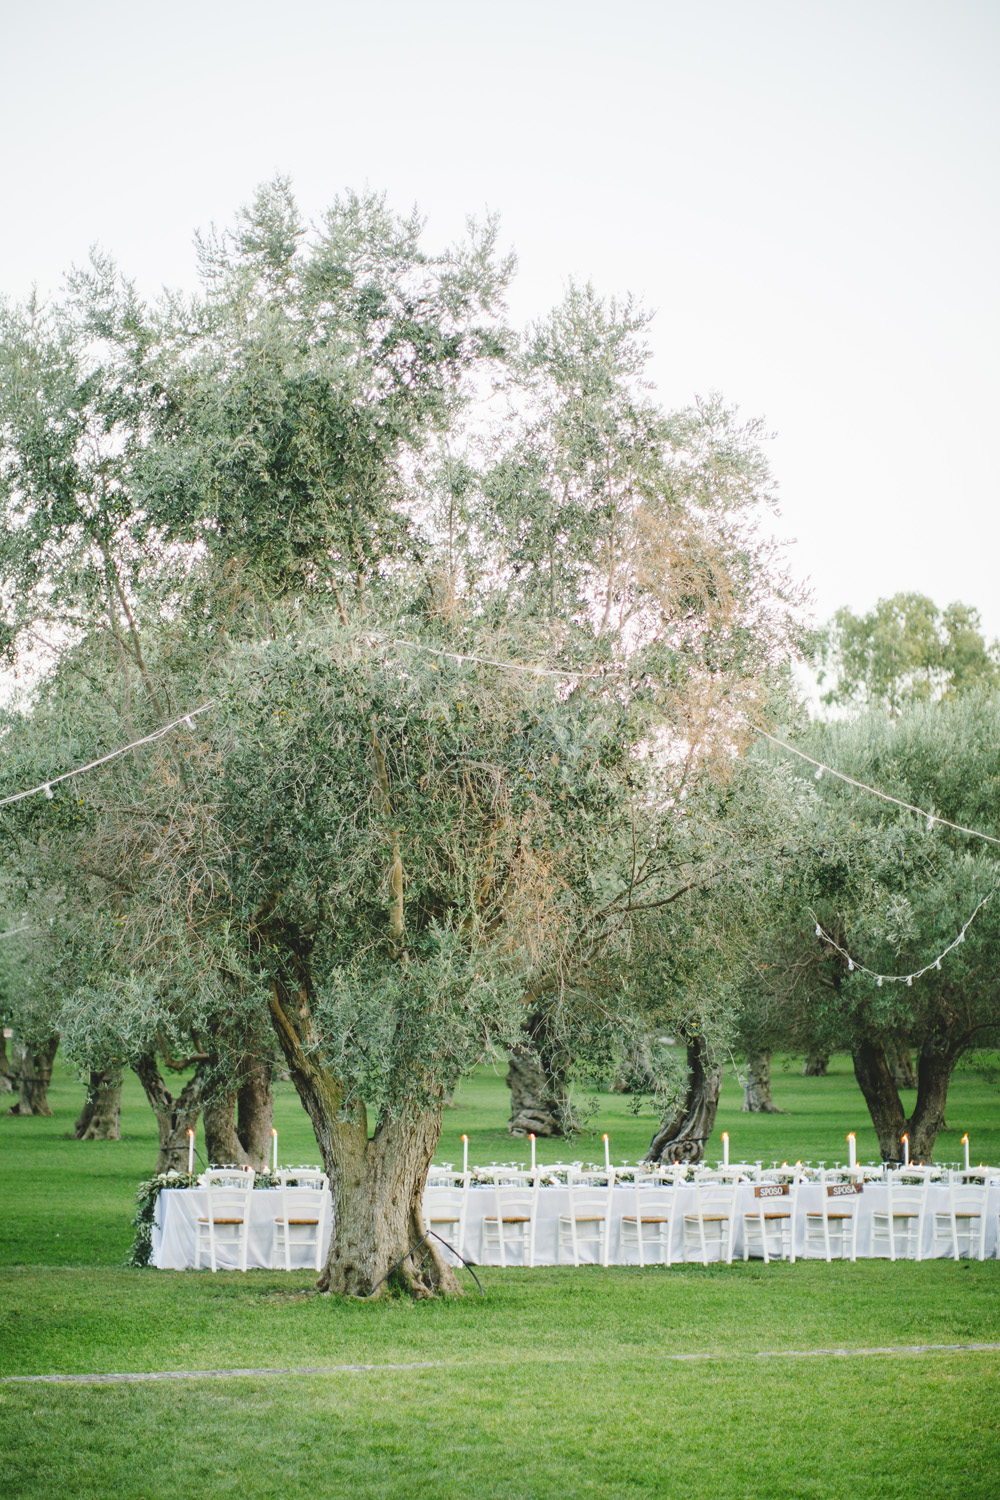 Les Amis Photo_Destination Wedding Photographer_Puglia Wedding_Masseria Torre Ruggeri_NICMATT_440.jpg